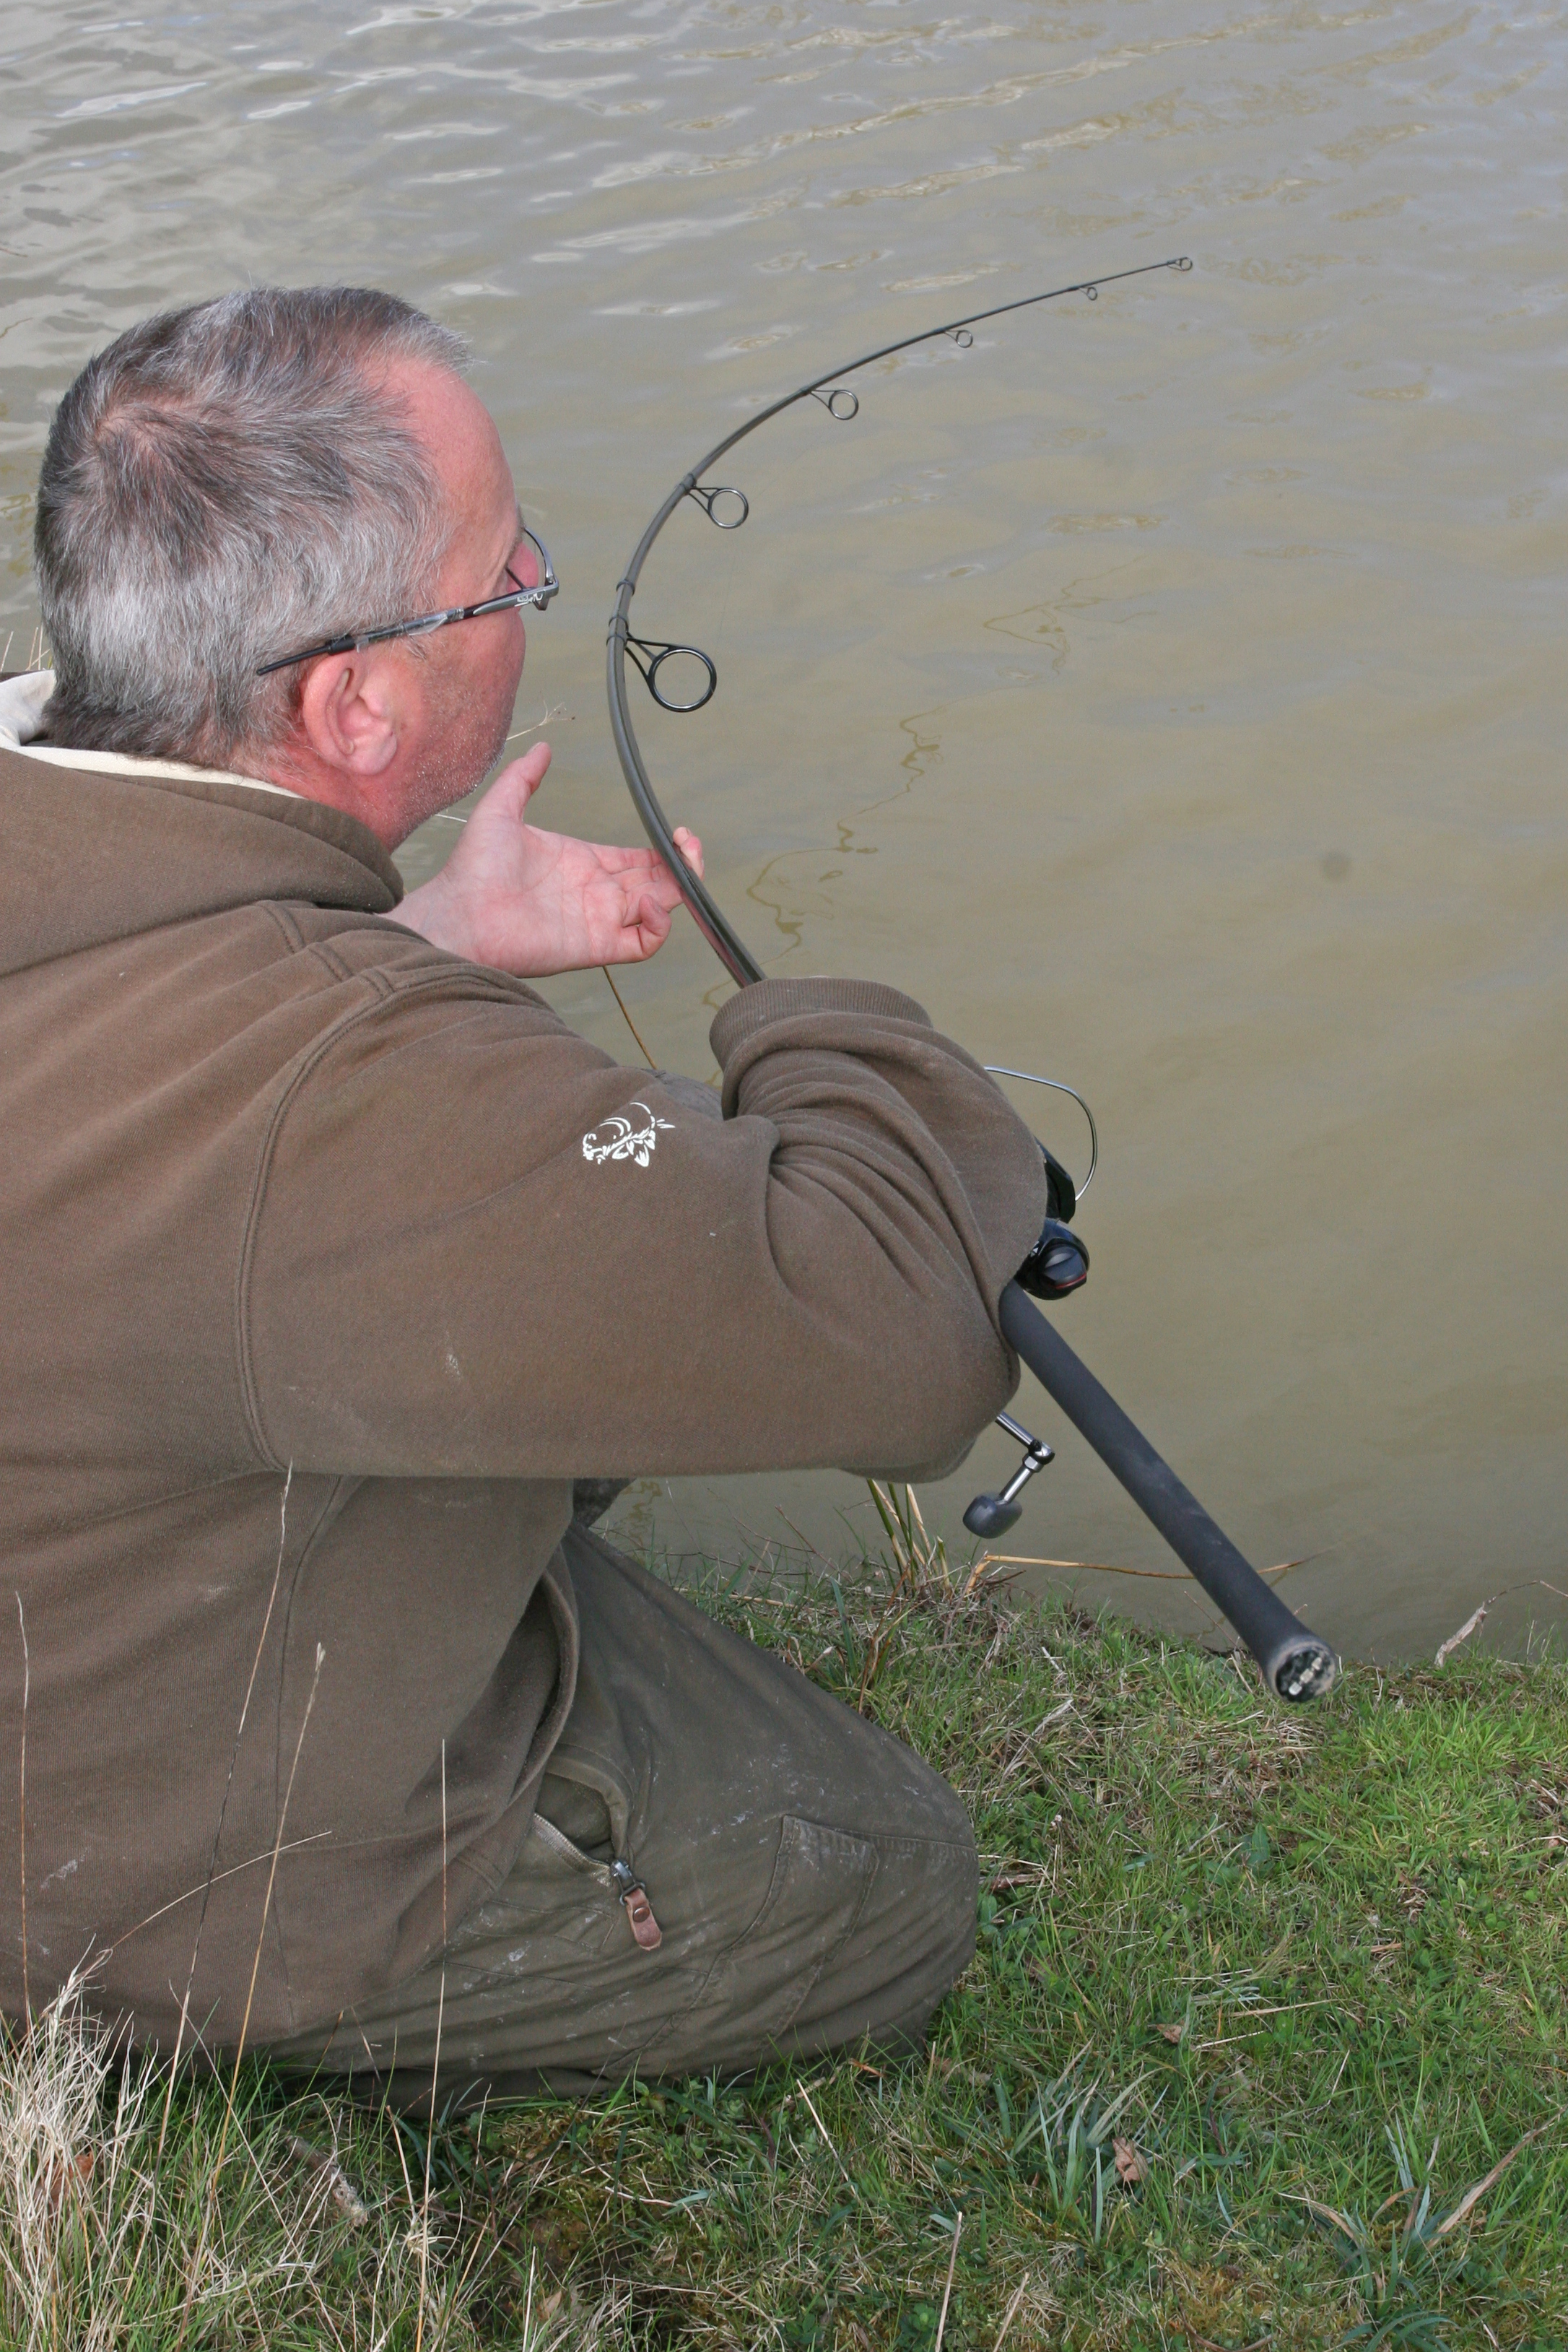 carp rod reviews - best 12 ft 3 lb carp fishing rods tested, Fishing Reels